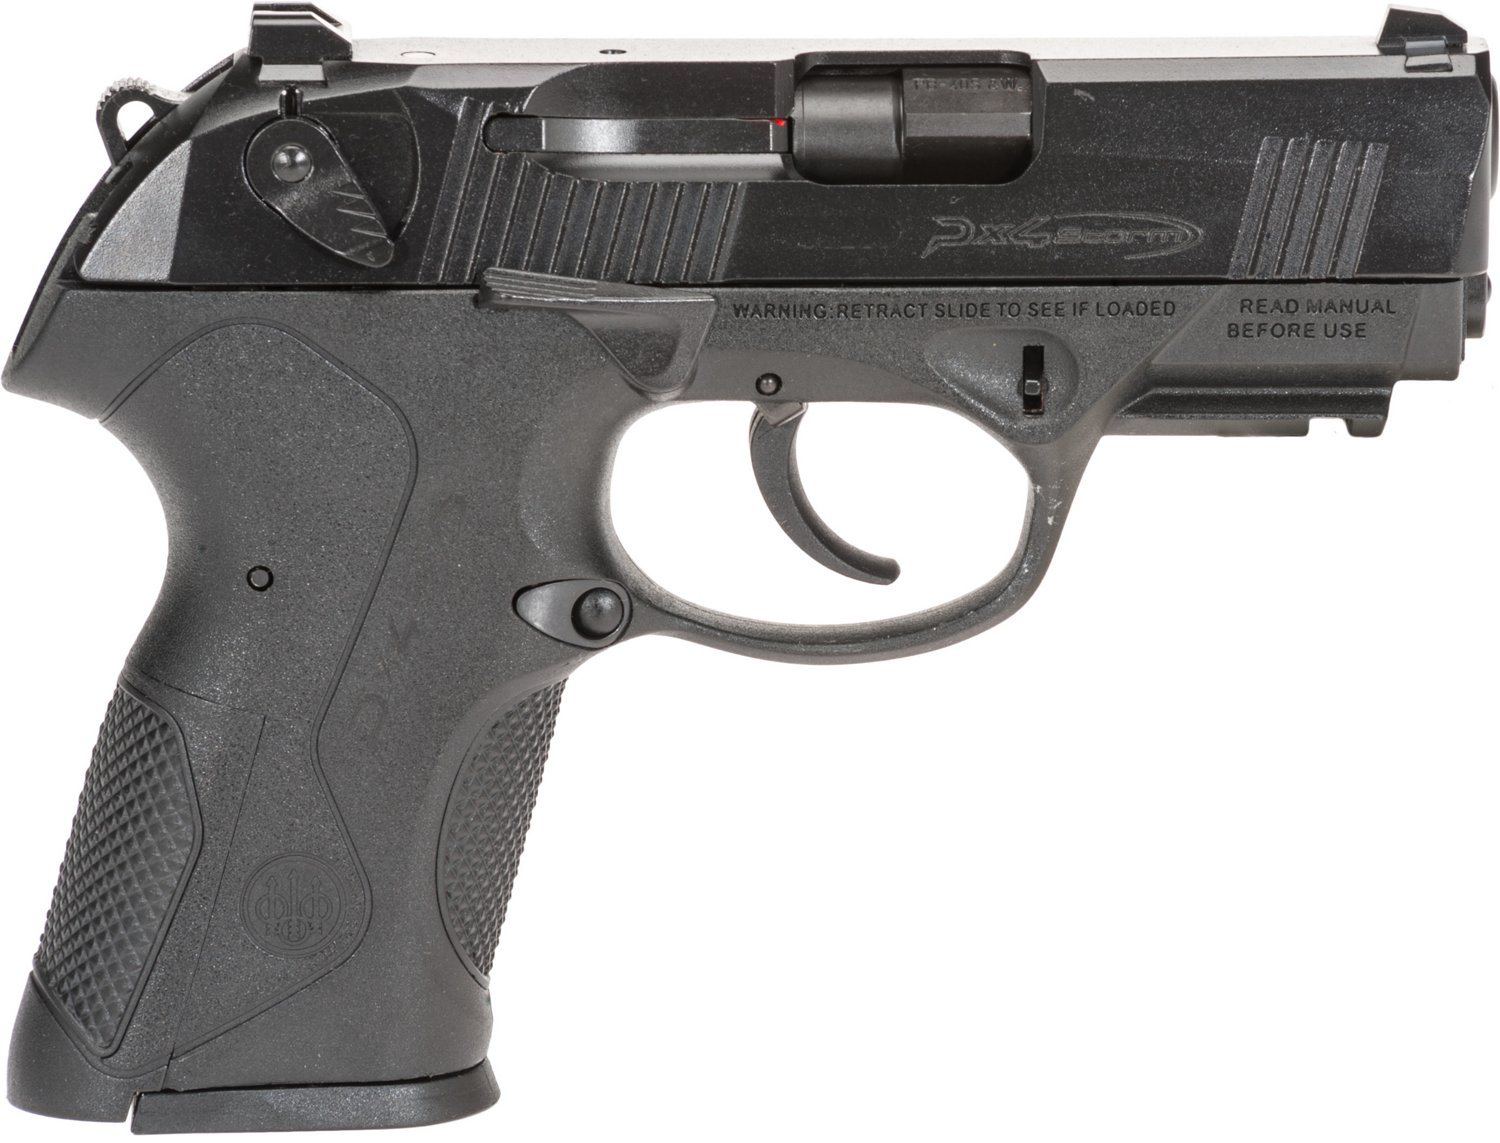 Beretta PX4 Storm .40 S&W Compact Semiautomatic Pistol - view number 1